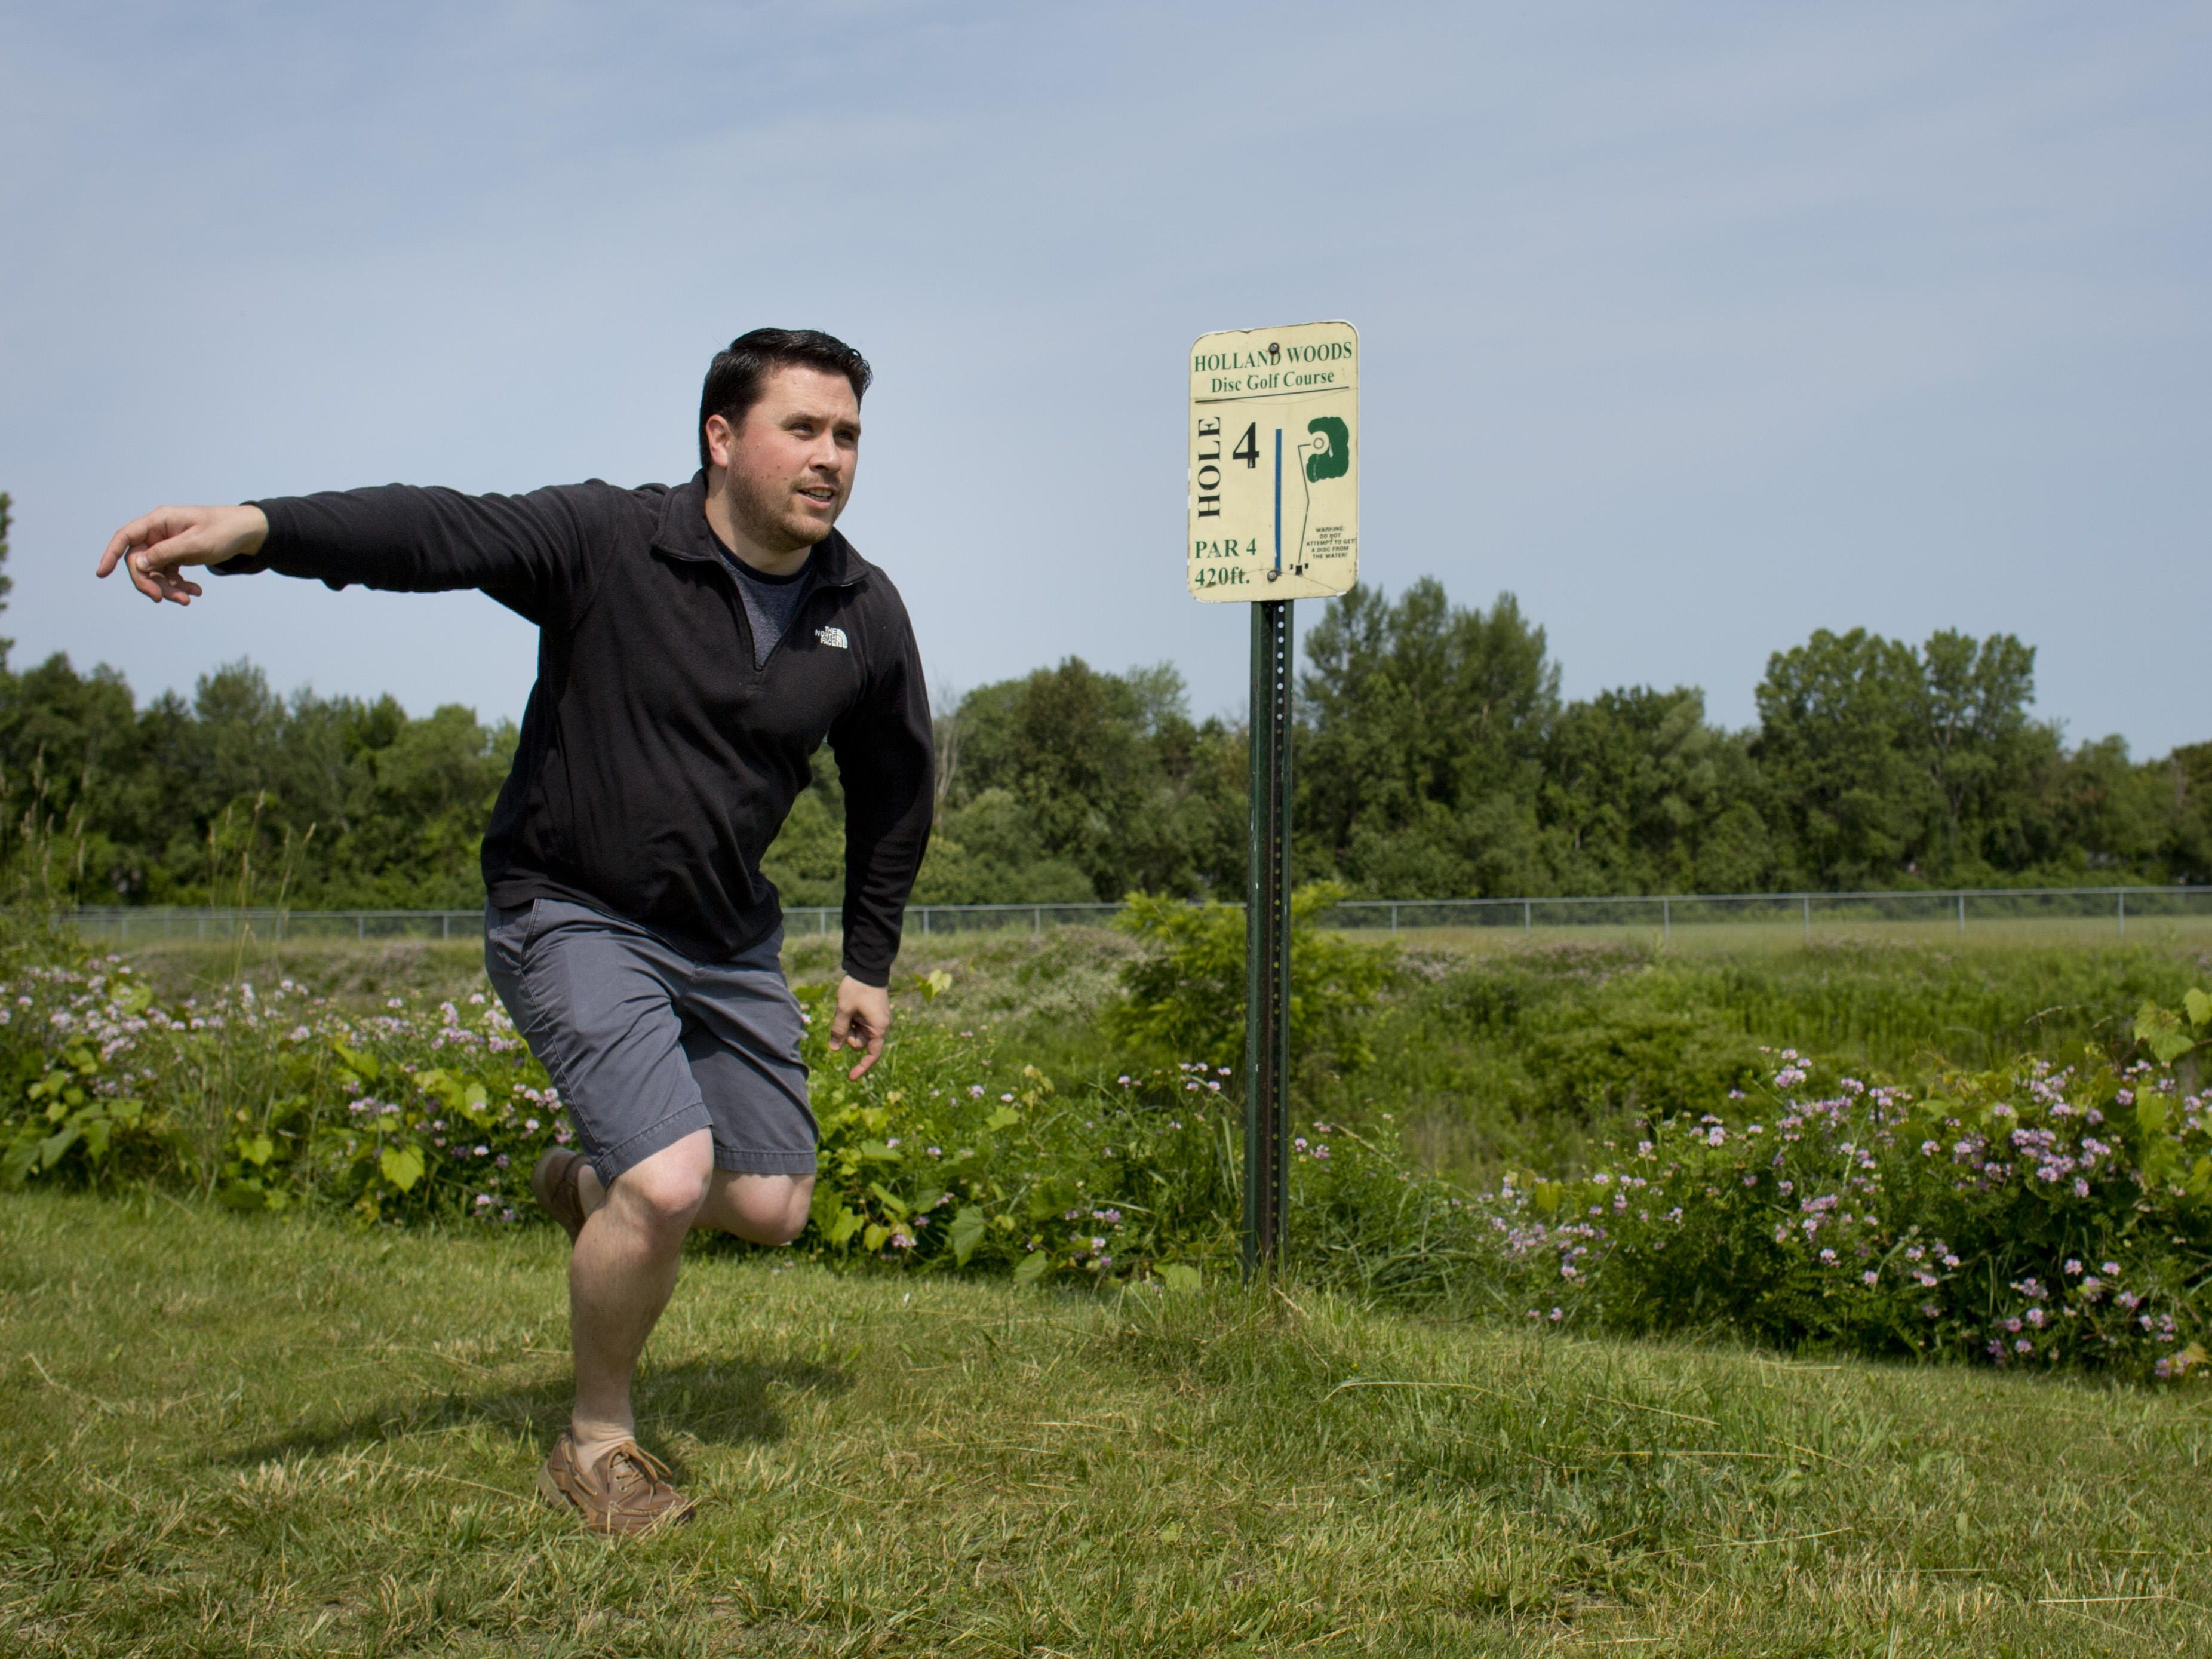 Paul Costanzo watches his disc while playing disc golf Friday, July 3, 2015 at Holland Woods in Port Huron.